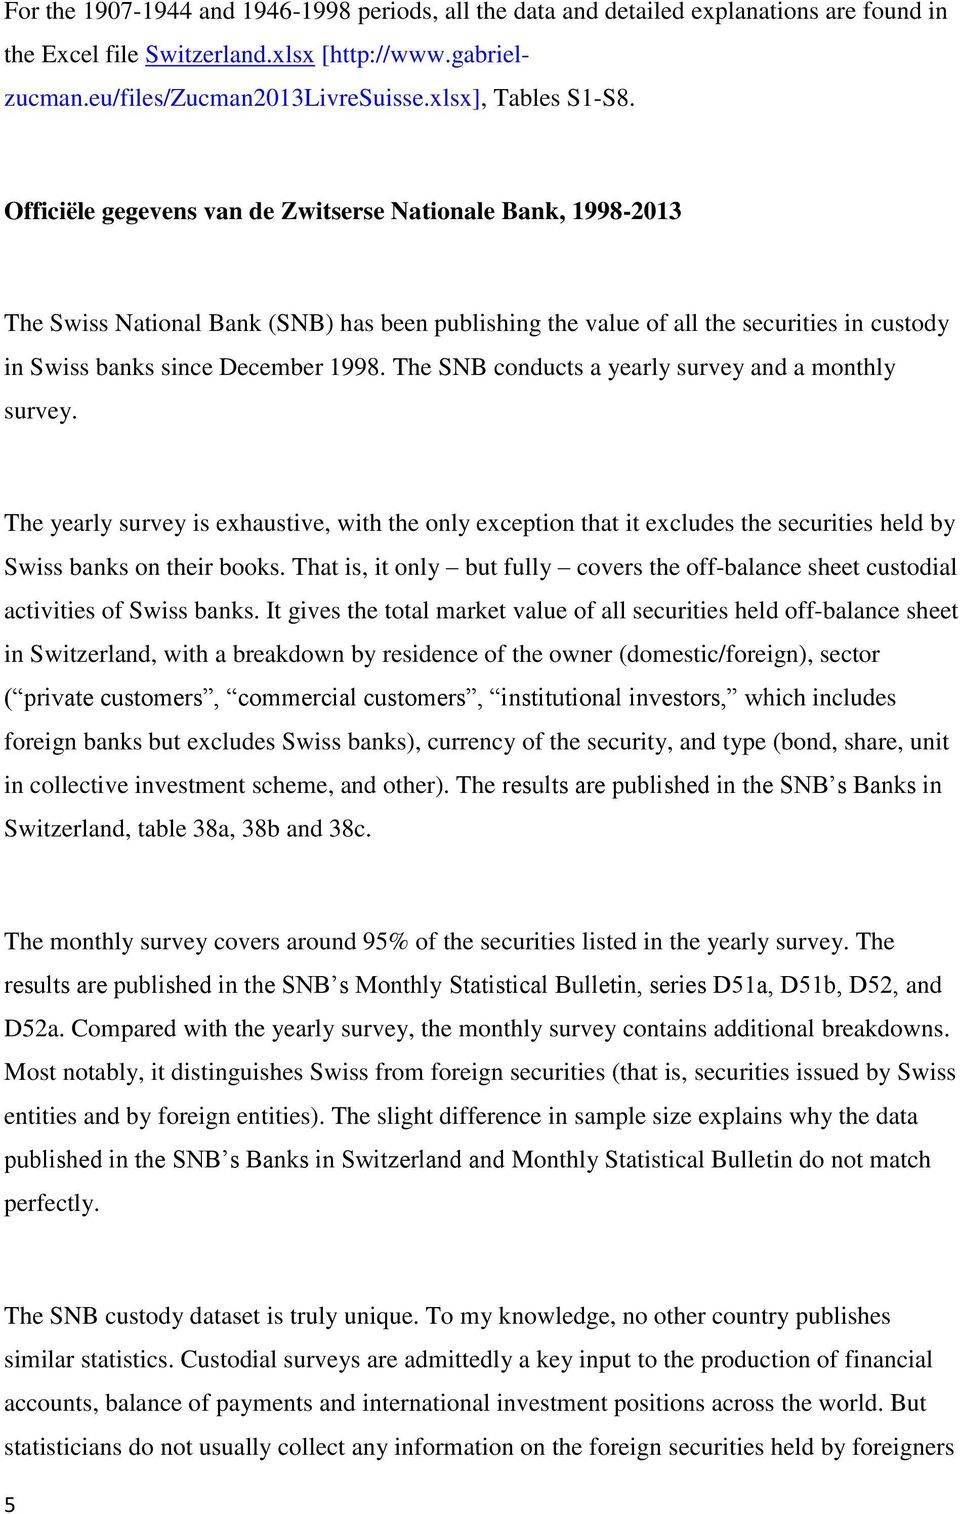 Officiële gegevens van de Zwitserse Nationale Bank, 1998-2013 The Swiss National Bank (SNB) has been publishing the value of all the securities in custody in Swiss banks since December 1998.